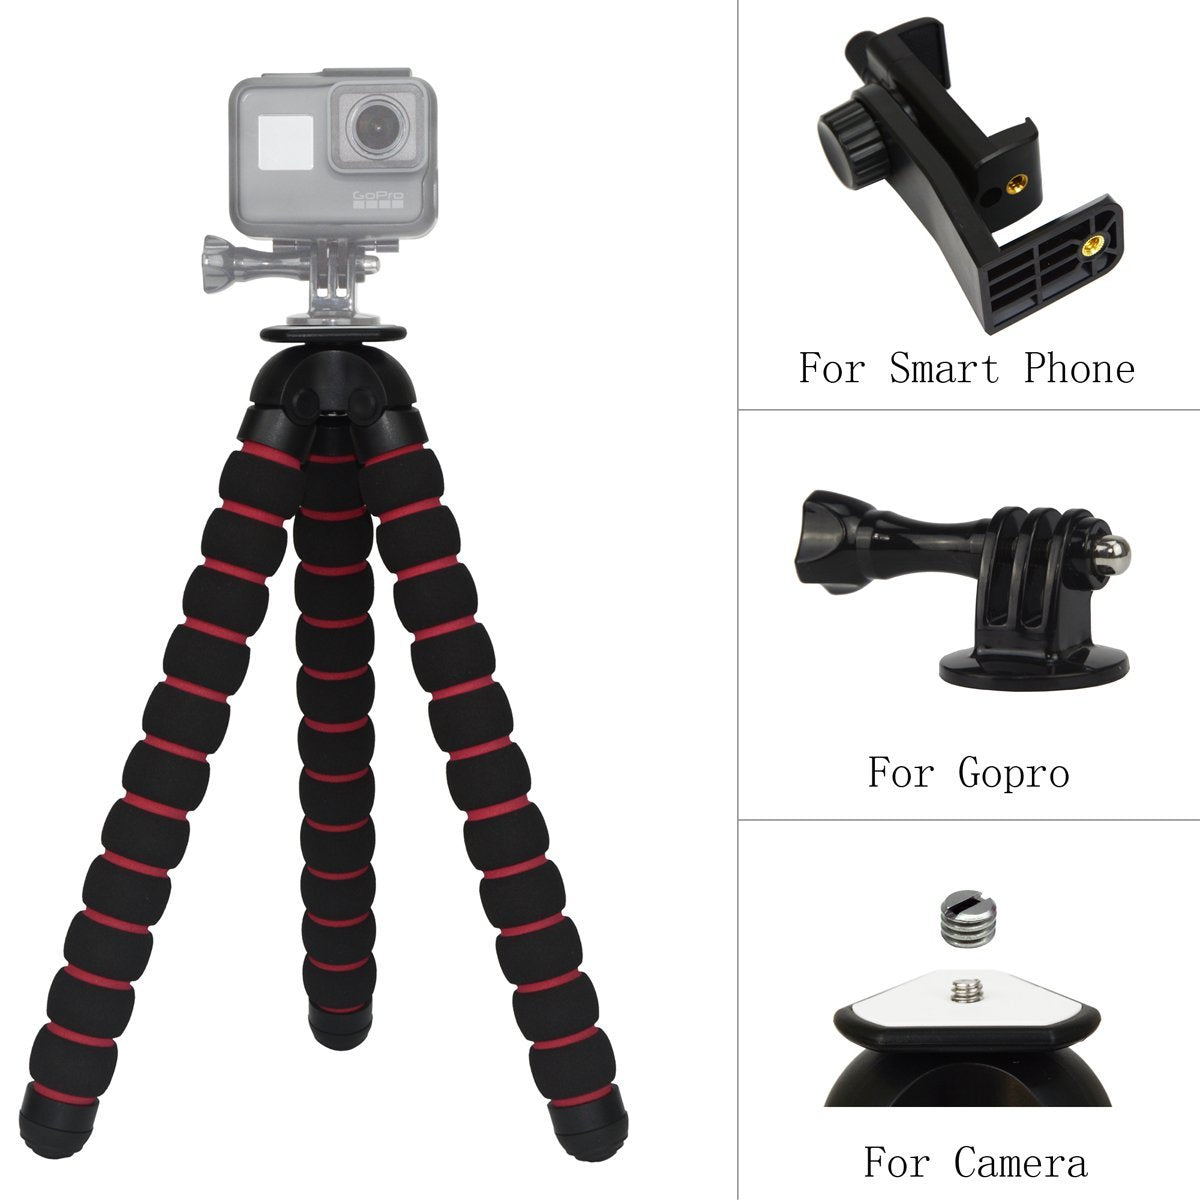 CRX Heavy Duty Gopro Tripod - Black & Red (Size: M) | Monthly Madness